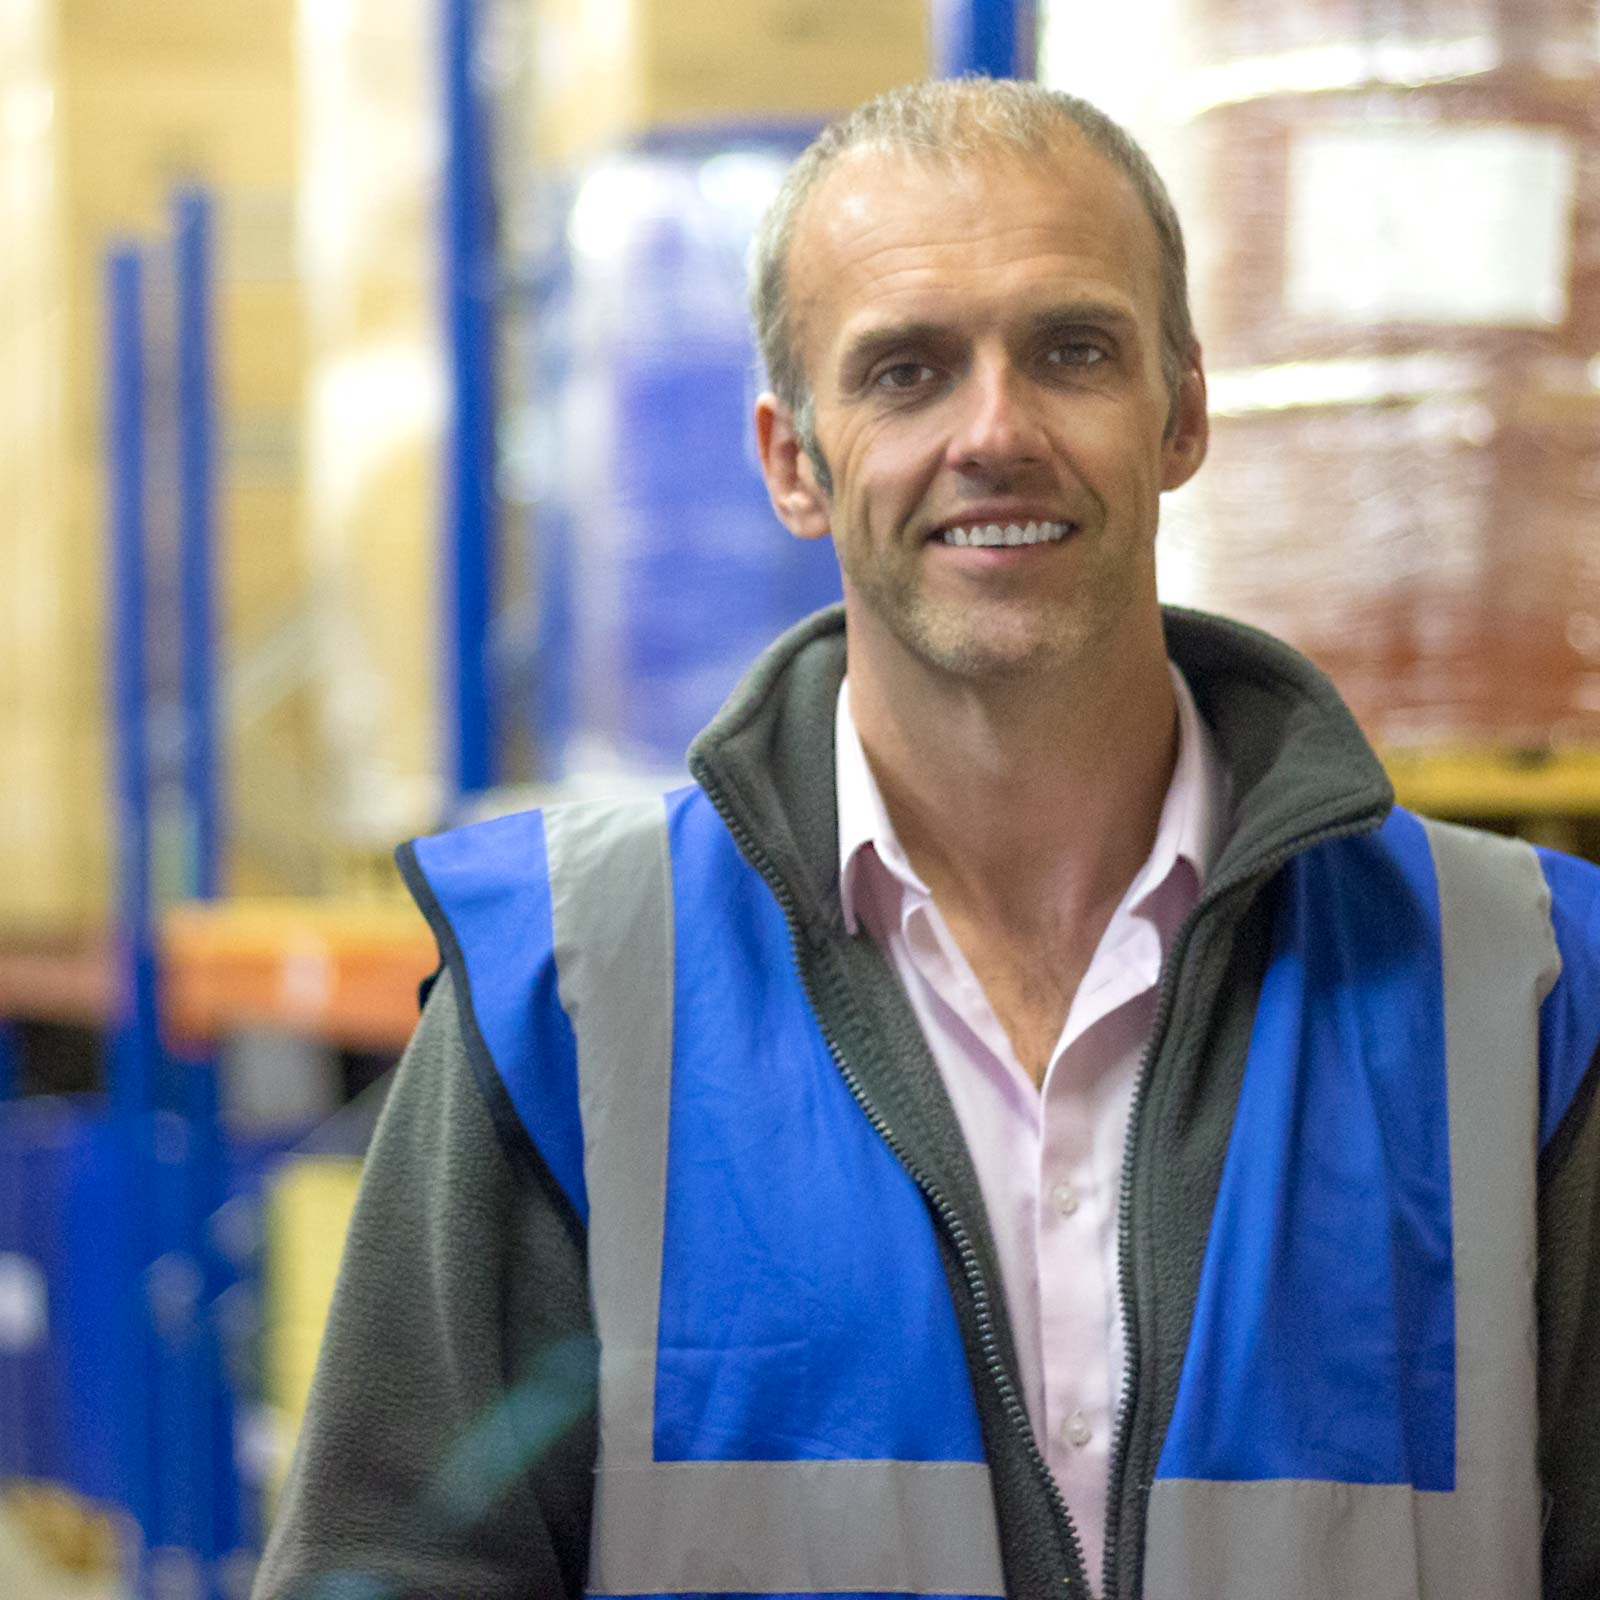 """Lee Davies Head of Production, Quality & Warehousing  """"Since starting at Naissance in 2017 I have already seen amazing changes. We have created a custom built clean room production facility, increased storage capacity by 60% and are actively working towards accreditation for ISO9001, food and cosmetic licence. Naissance is a company that's growing at a time where lots of companies are reducing in size and stature. Despite this incredibly fast growth the business holds firm to its roots of being an ethical, organic company while still driving to be a major force in its marketplace. The reason I like working at Naissance is the great group of people working here who are all led by an inspirational owner.""""  Favourite product: """"My Favourite product so far is the 'Made by You' lemon fizz bath bomb set. This was the first product I tried after joining Naissance and being able to make one of the products we make with my daughter was such a fun experience we cannot wait to try more of them together."""""""